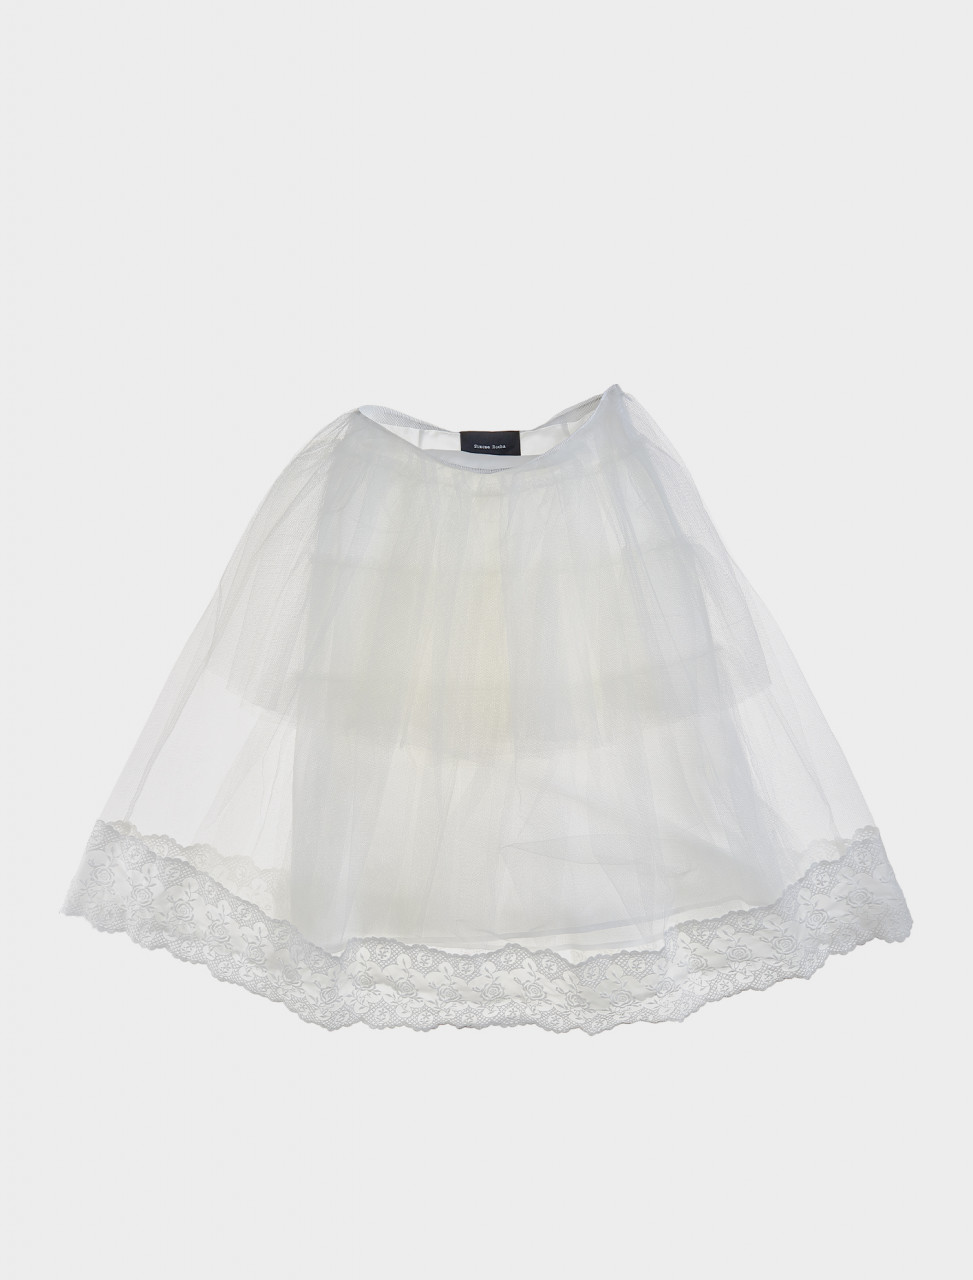 Simone Rocha Tutu Skirt in White Lace